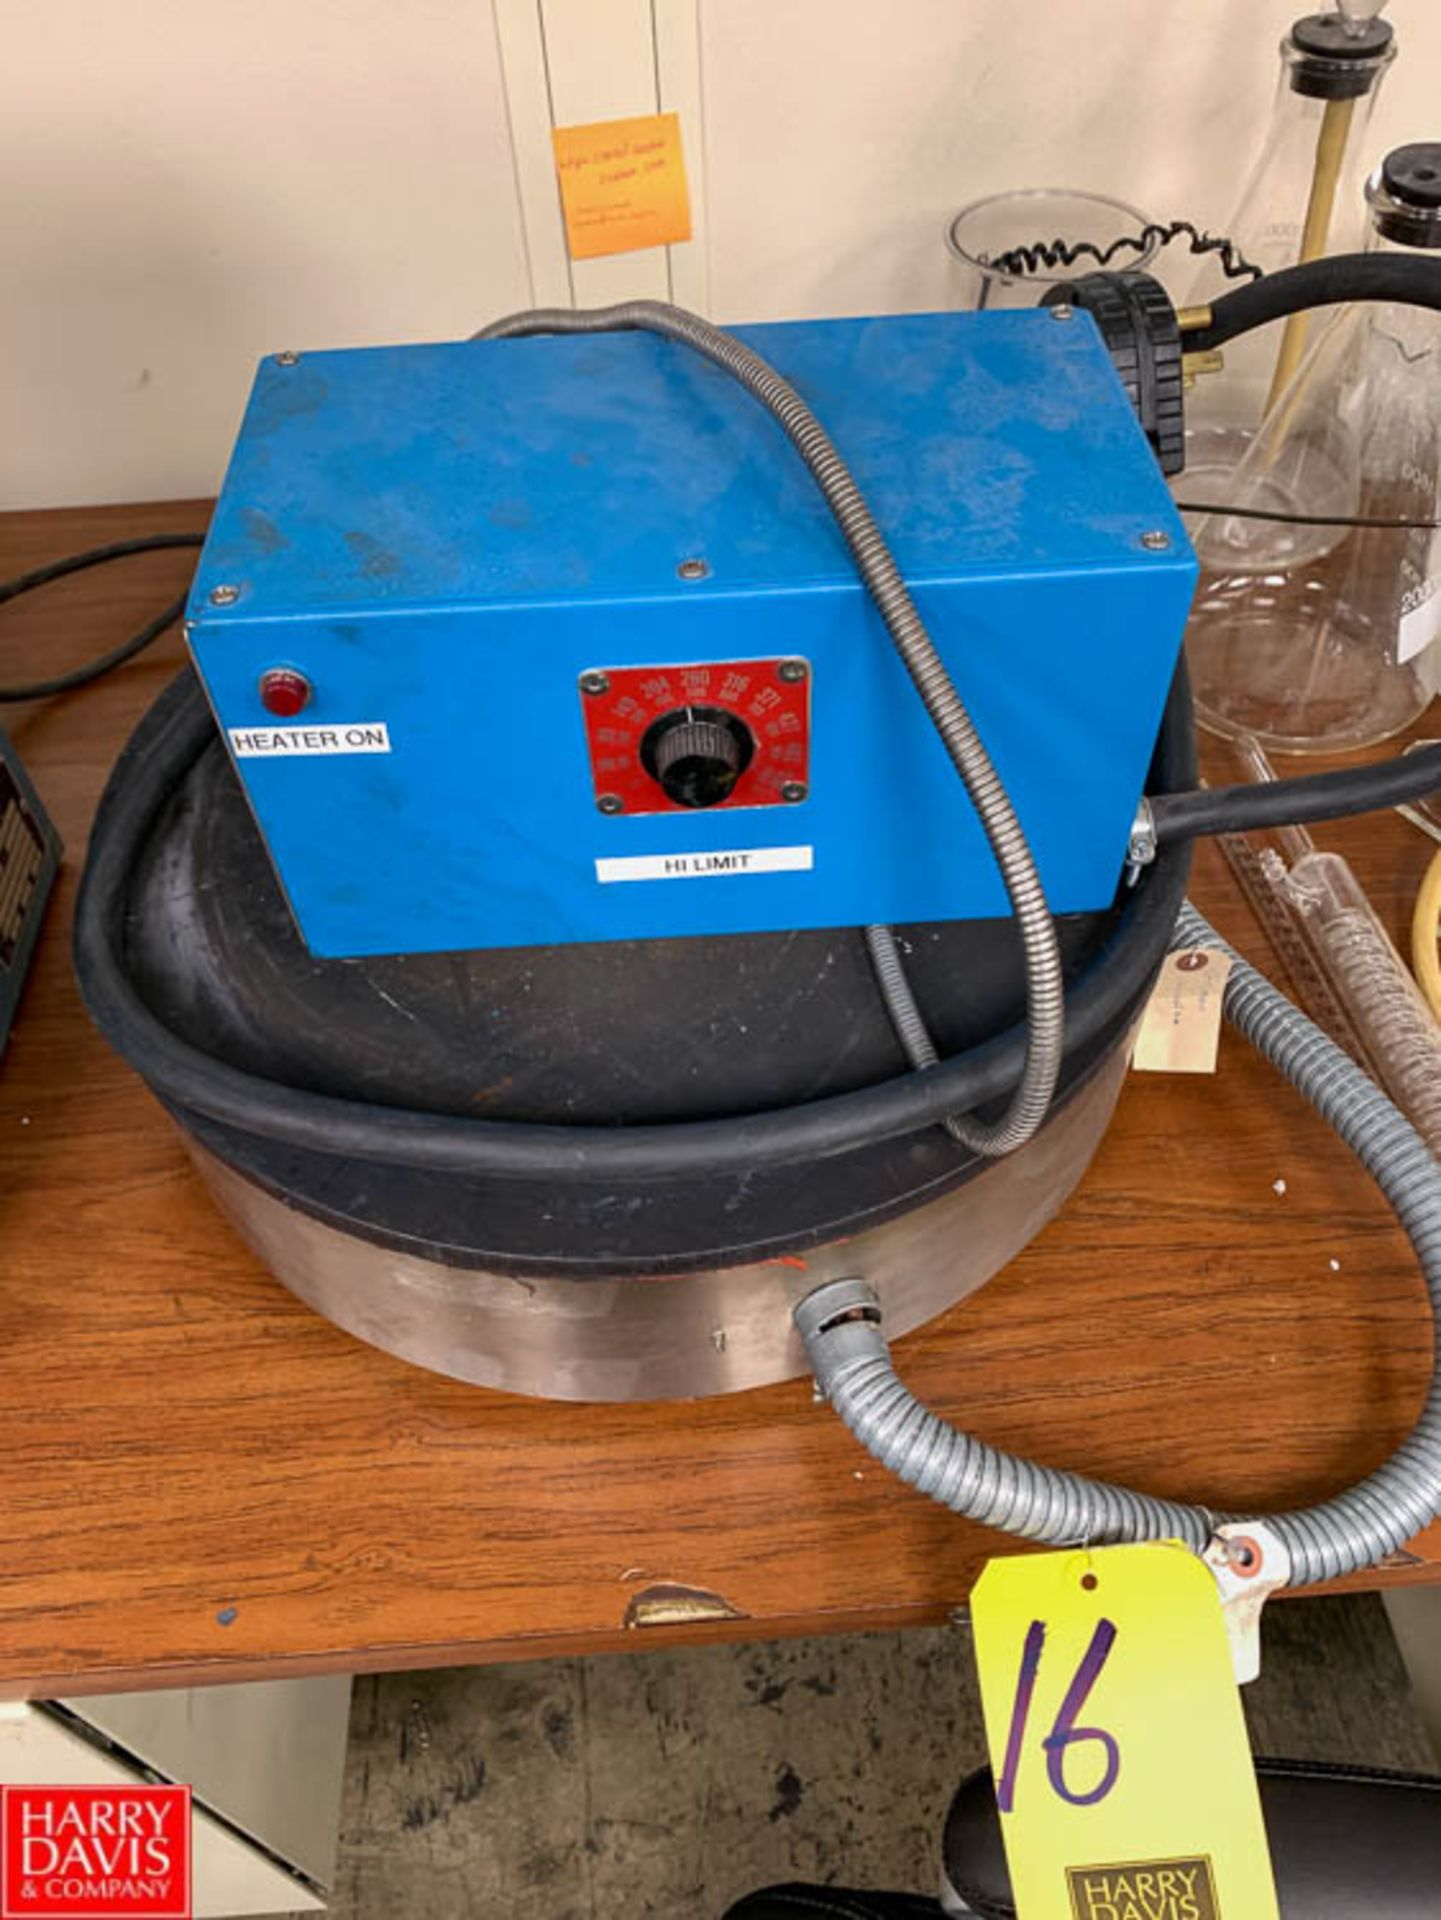 Lot 16 - Hot Plate with 240 Volt, 1000 ºF Rigging Fee: 50